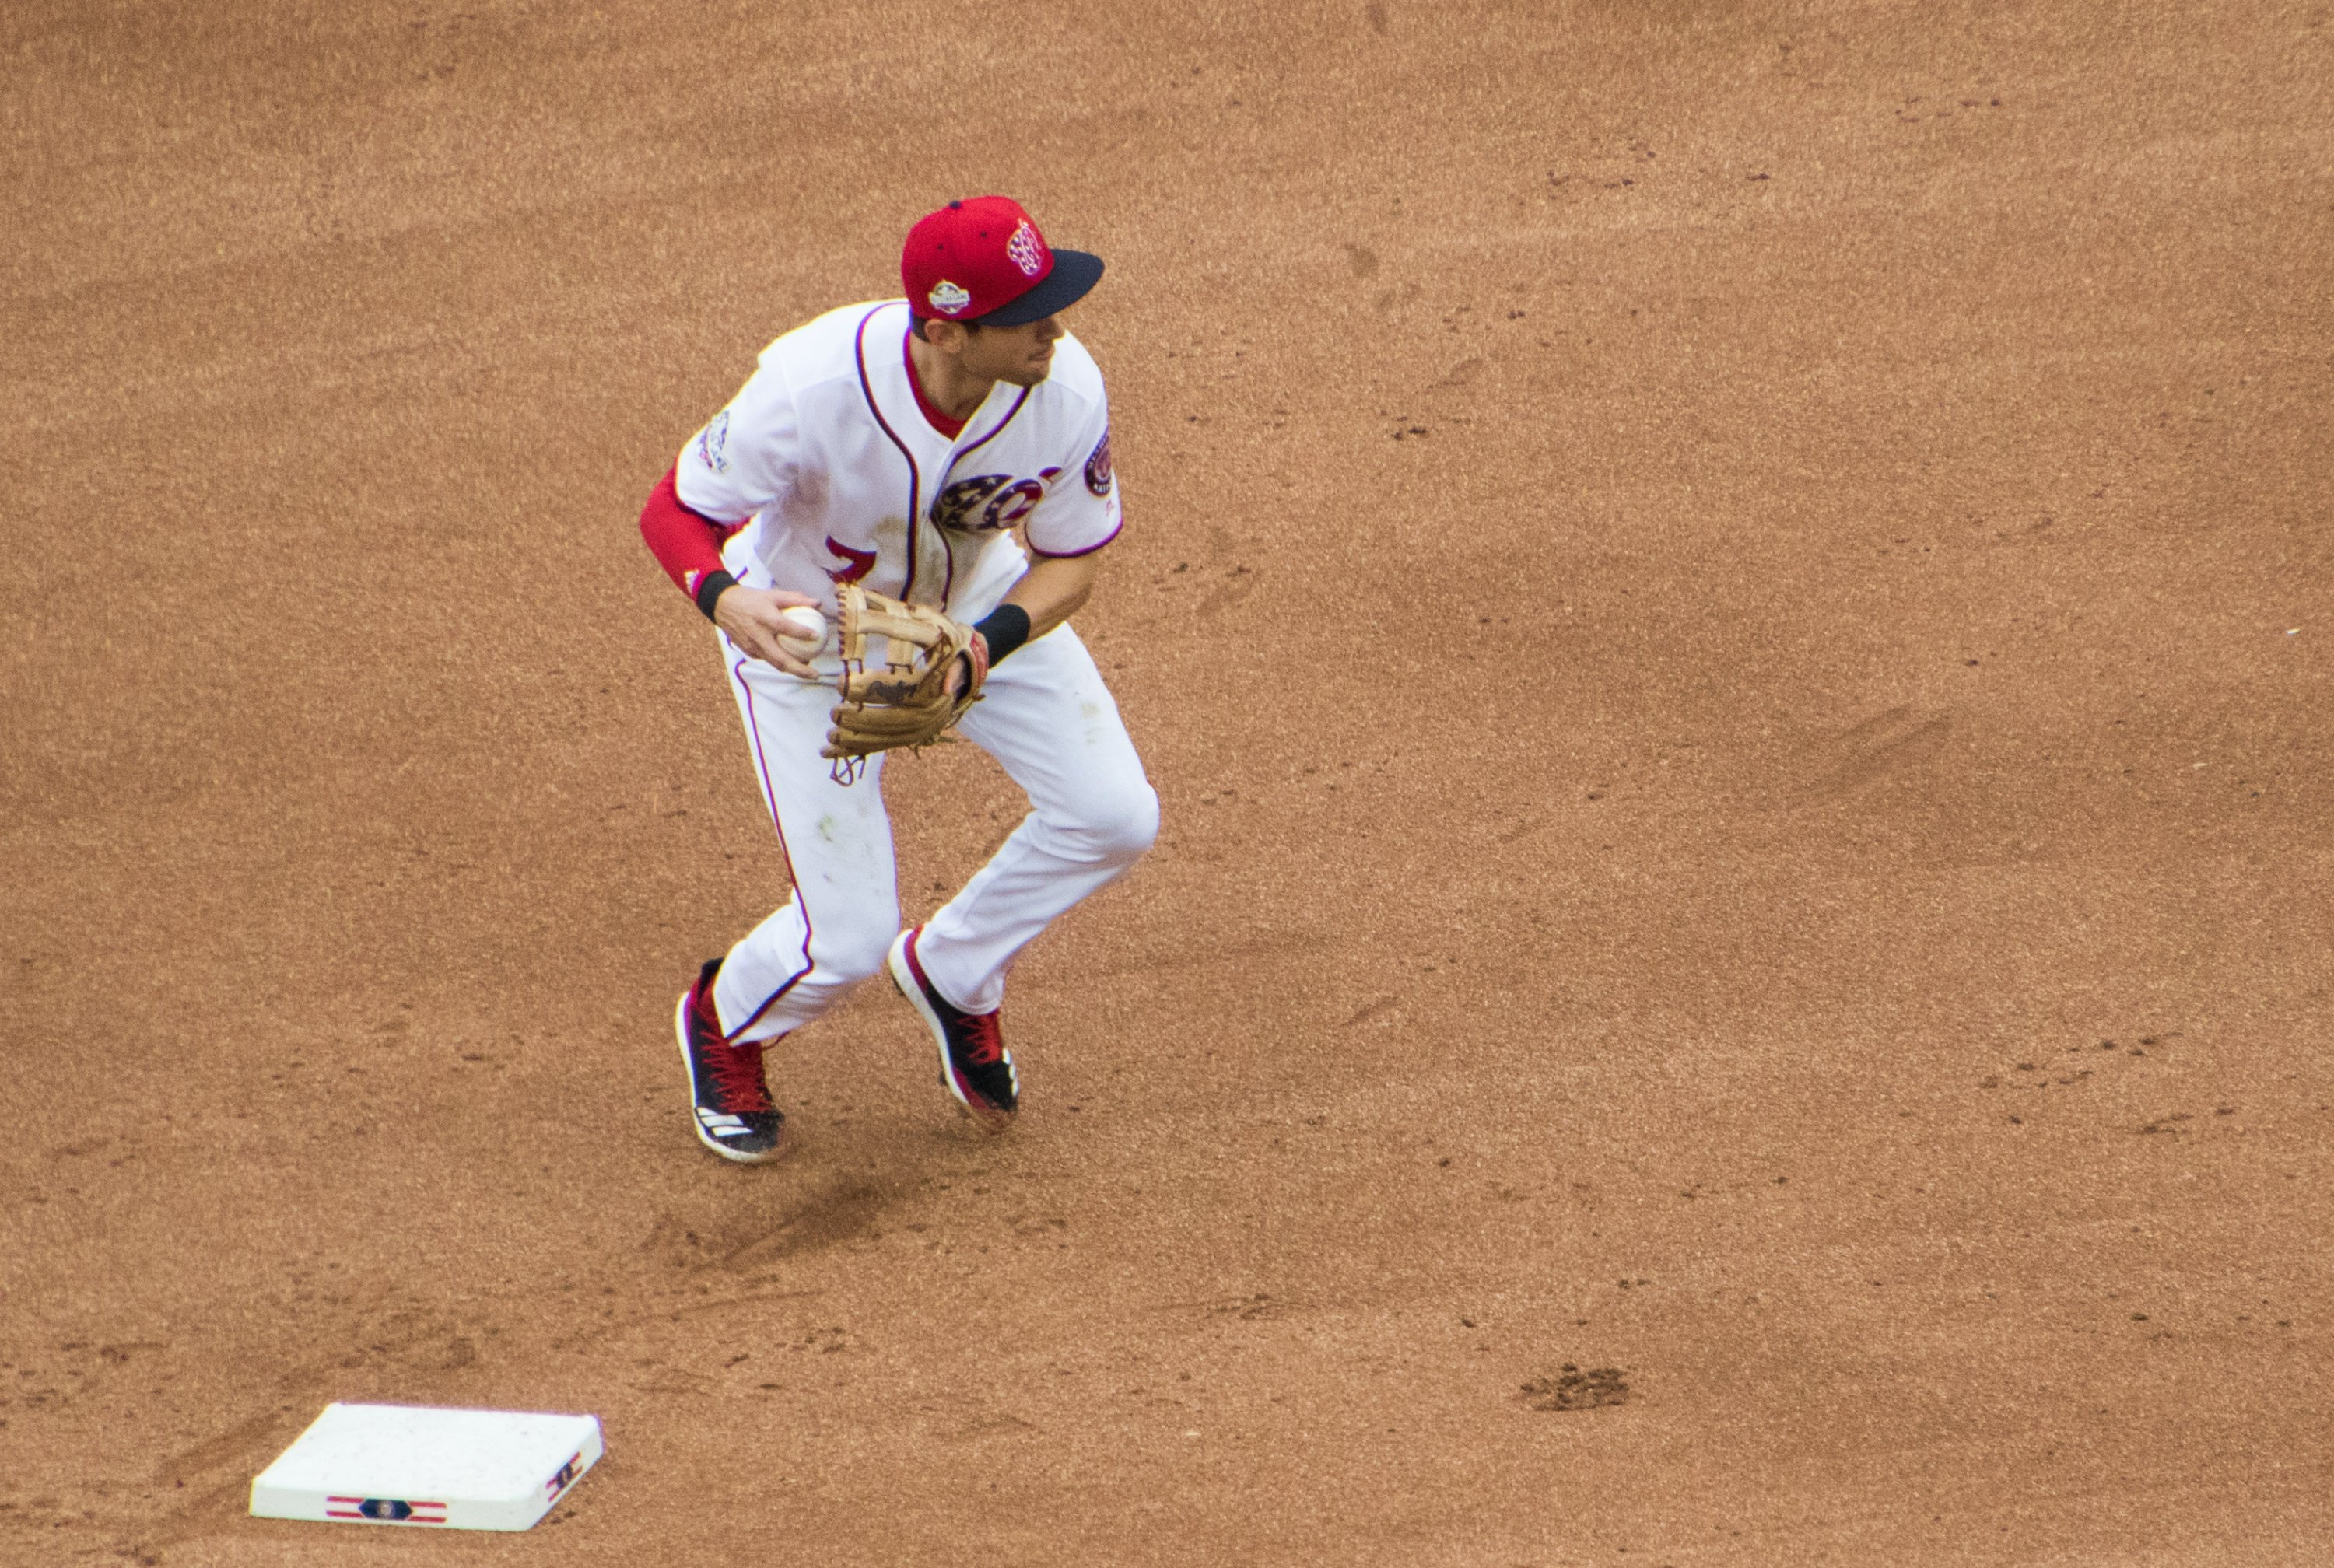 Nationals player Trea Turner tested positive for Covid on Tuesday. Photo by Flickr user Dave.